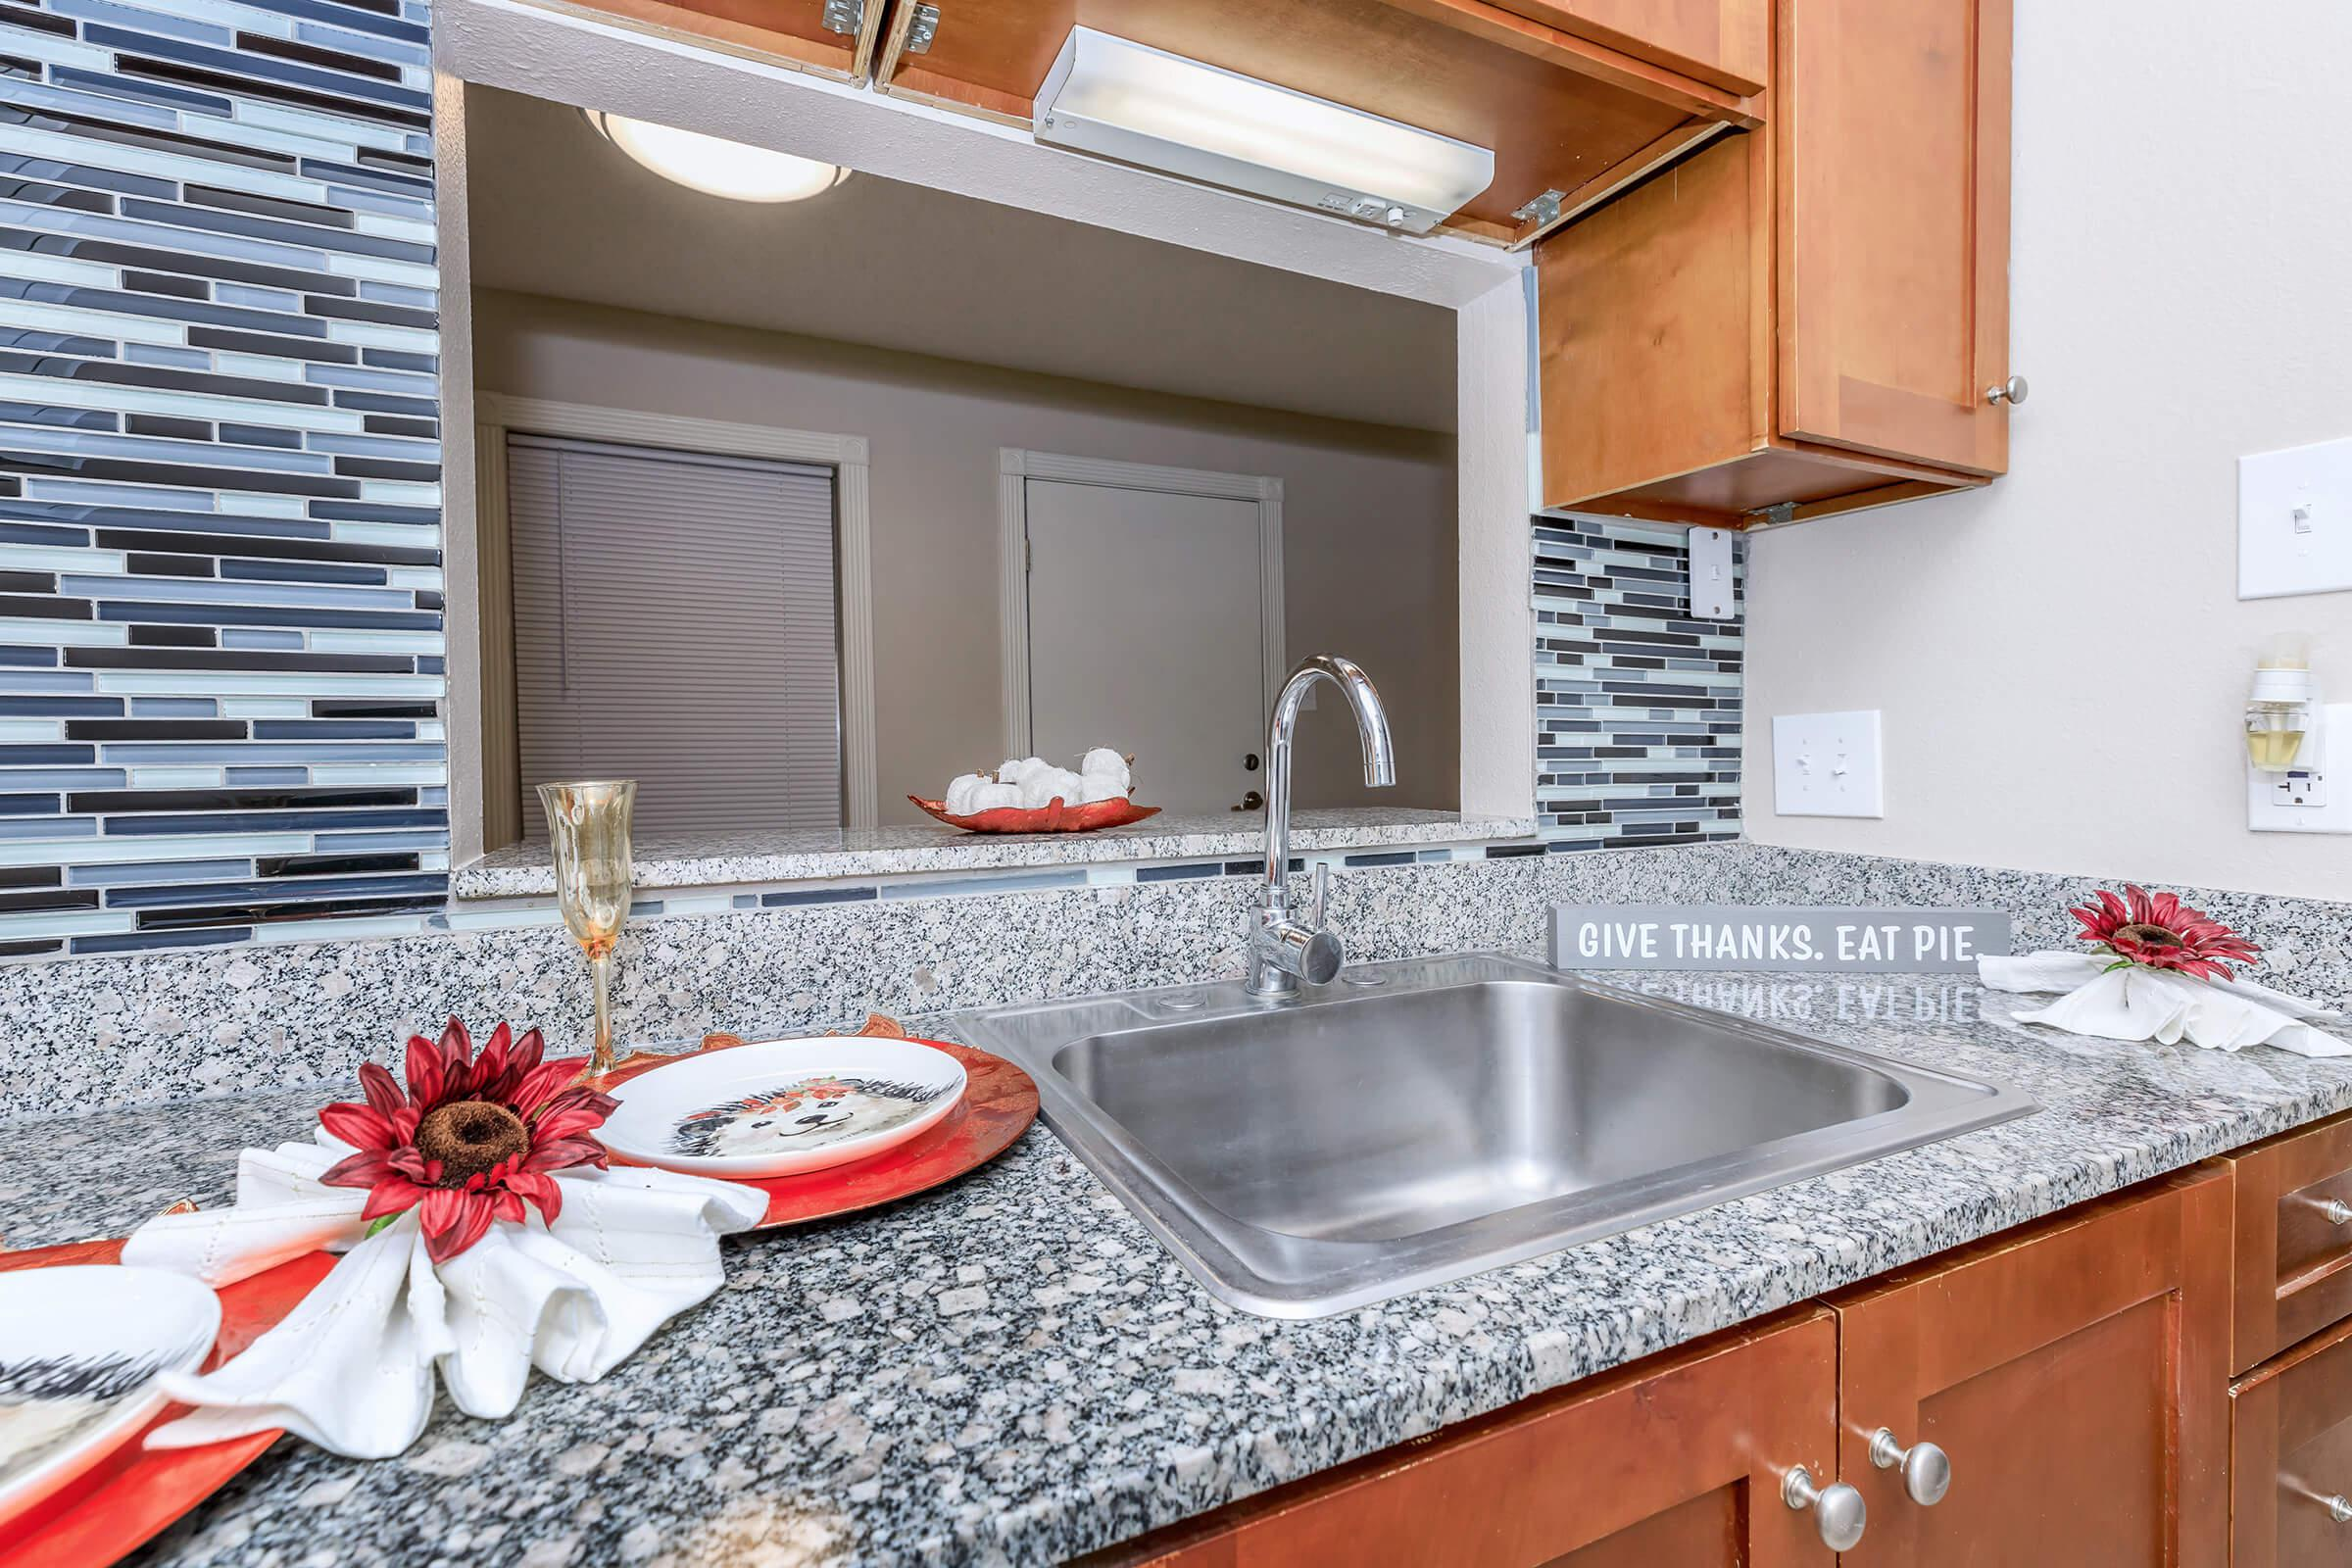 a kitchen with a sink and a counter